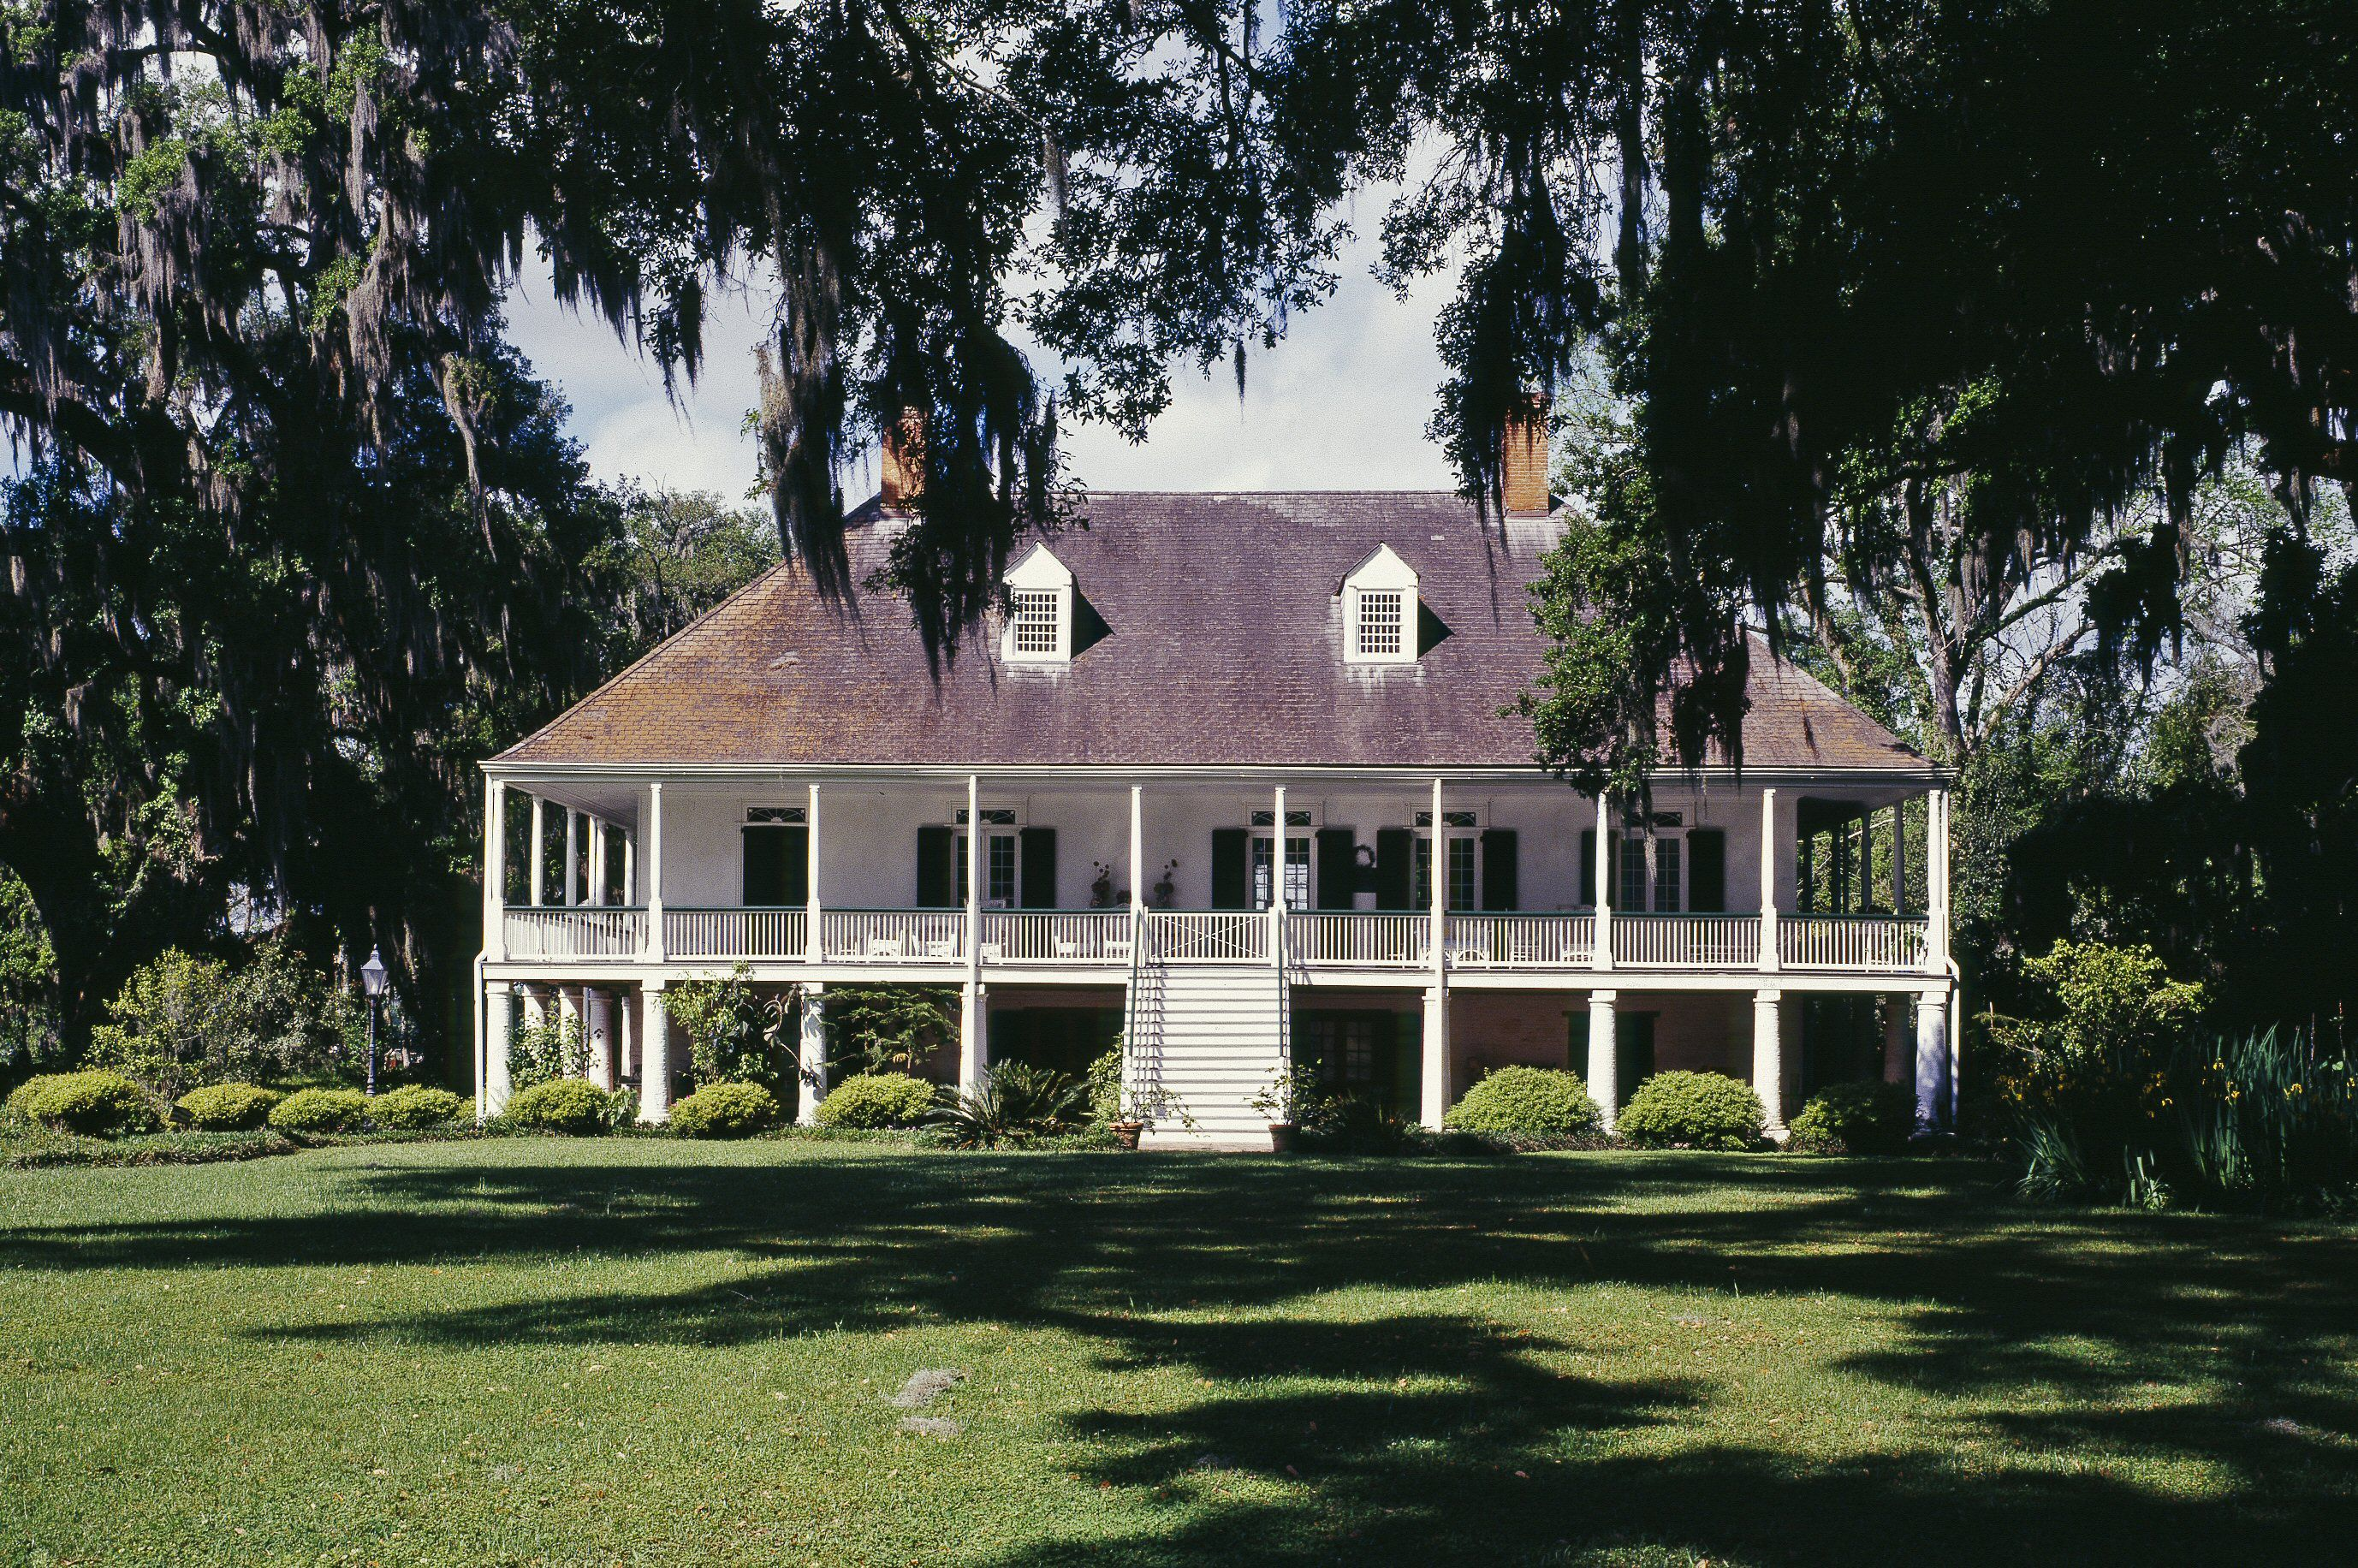 French creole and cajun houses in colonial america for House style examples